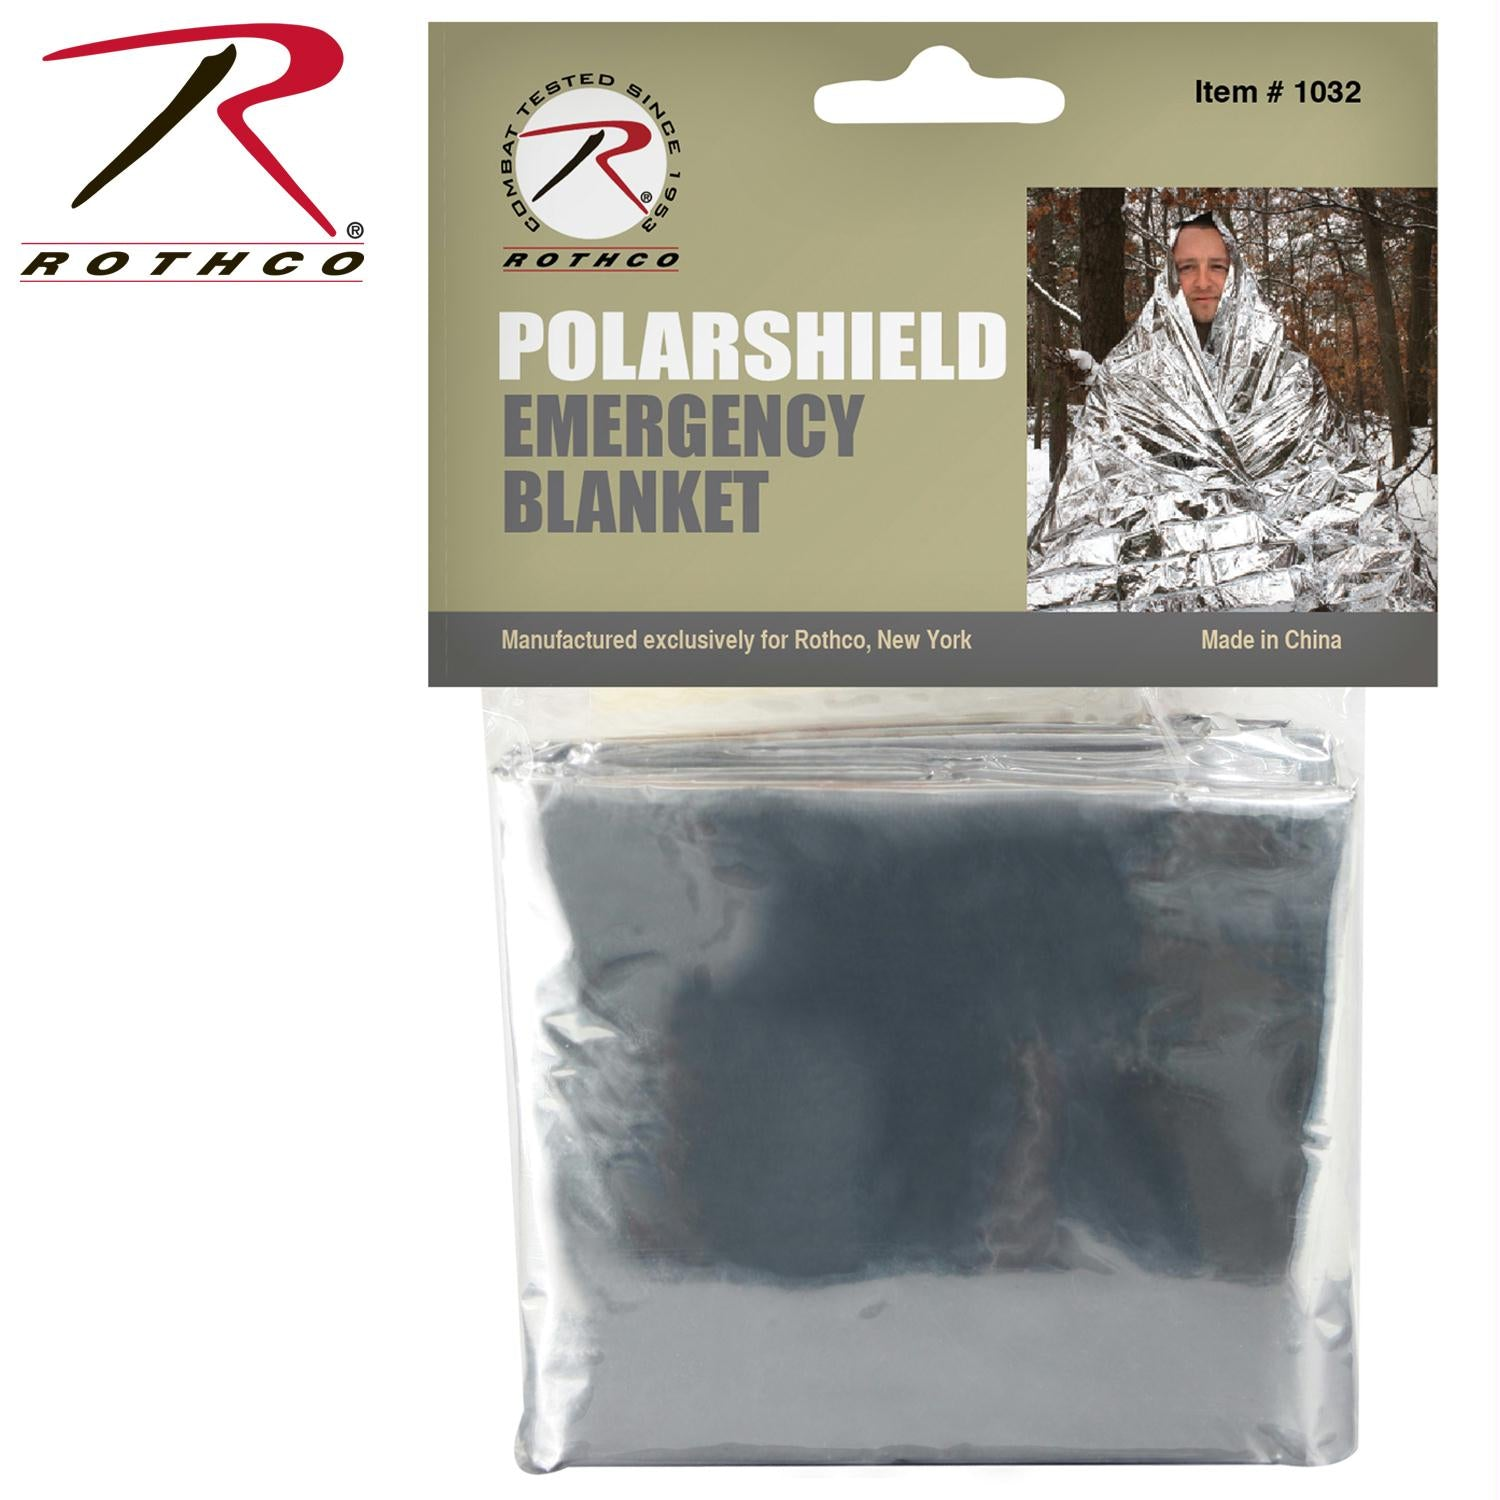 Rothco Polarshield Survival Blankets - 82 Inches